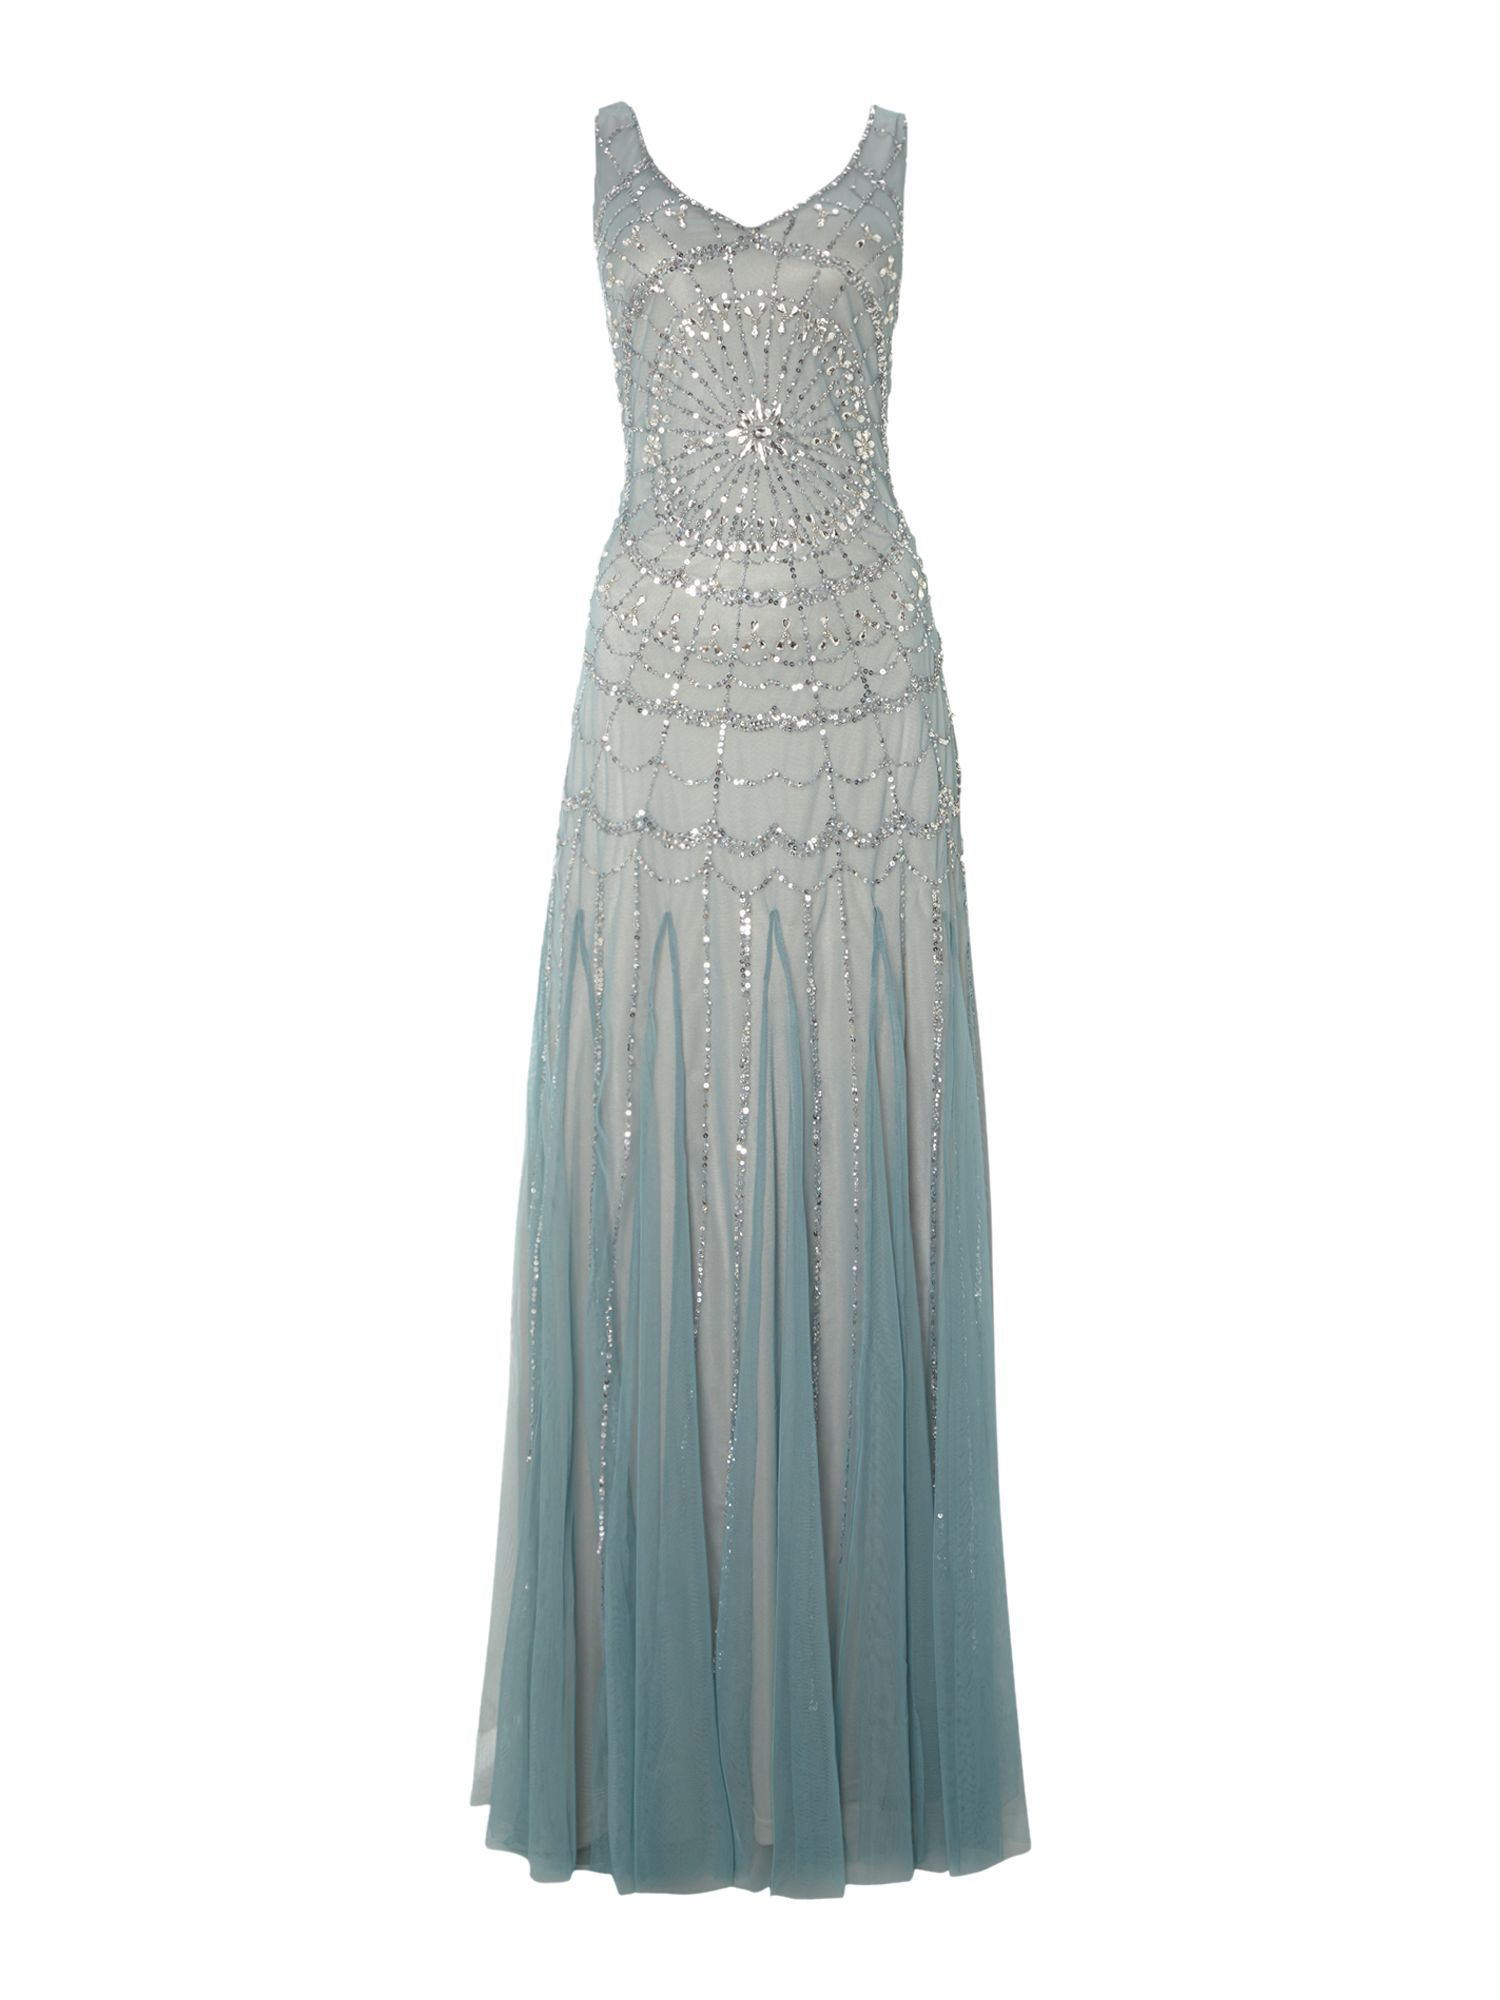 1920s dresses uk 1920s style dresses 1920s style and downton abbey 1920s dresses uk ombrellifo Image collections